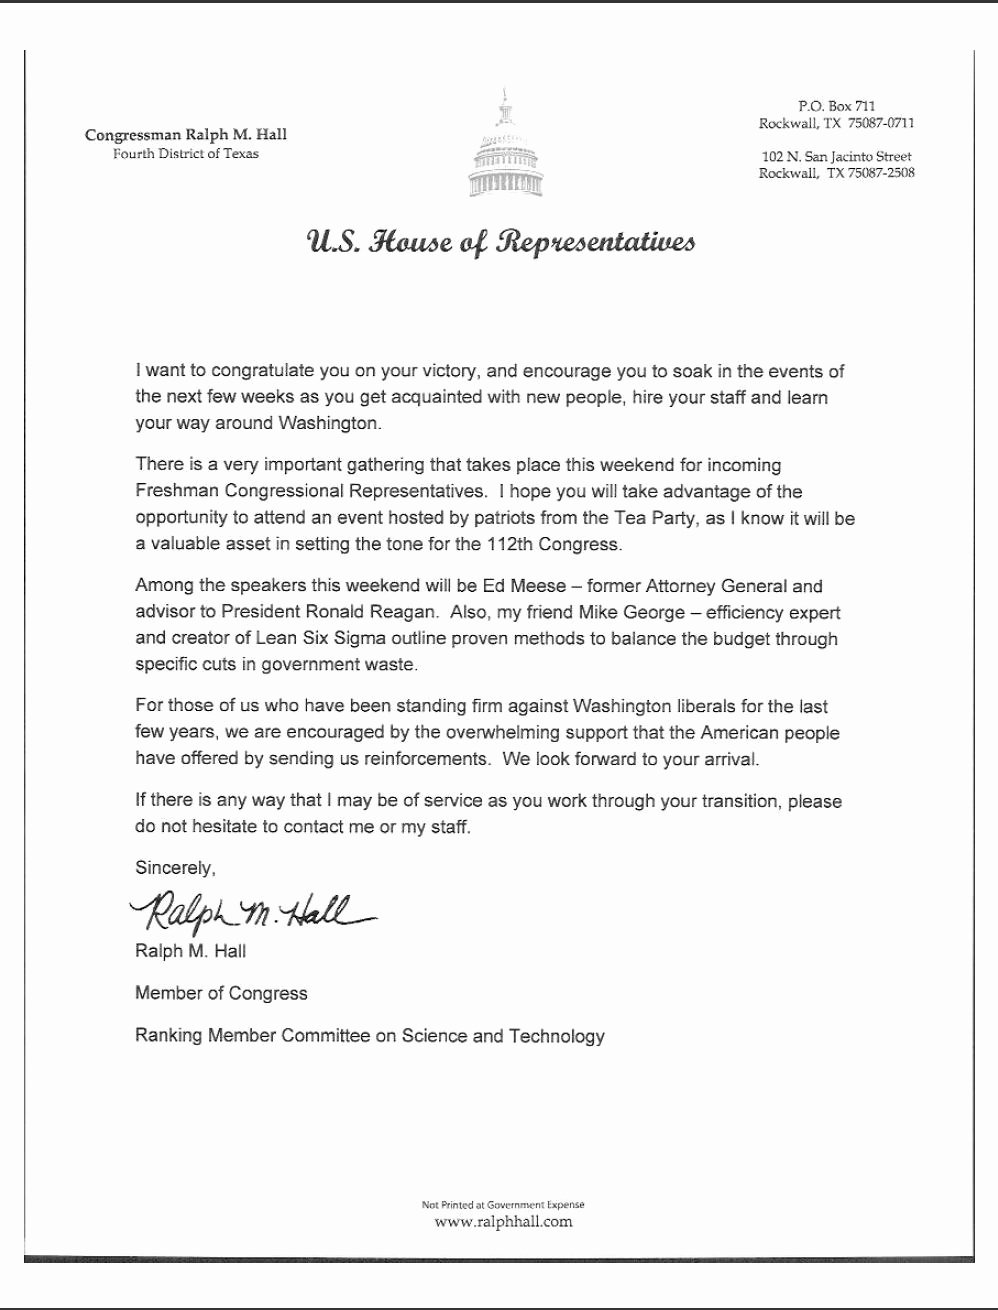 Letter to Congress format Best Of Ralph Hall Congratulates In Ing Members to 112th